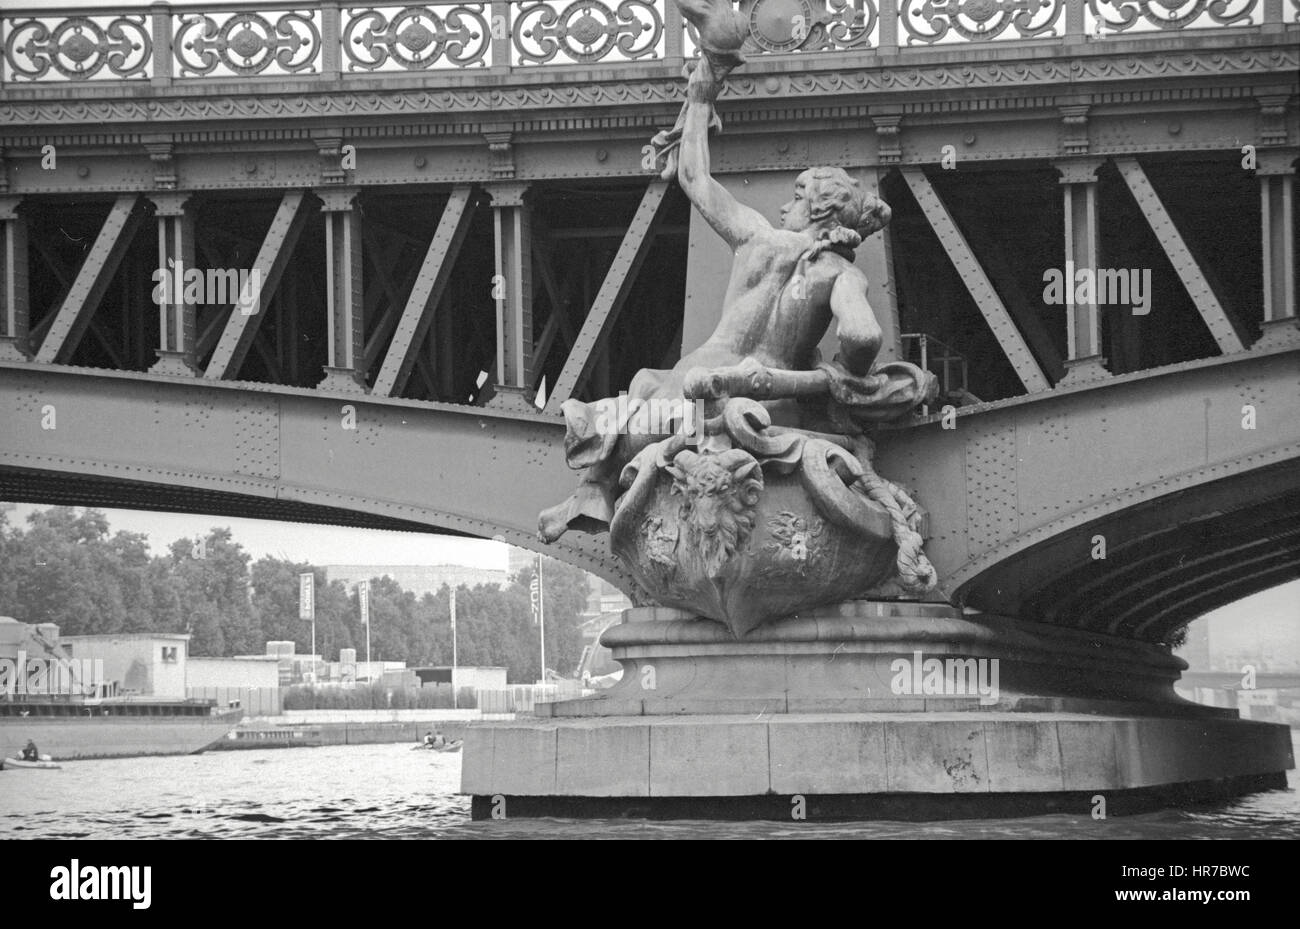 The Mirabeau Bridge over the Seine River feature bronze sculptures on the piles. This figure on the right bank is - Stock Image